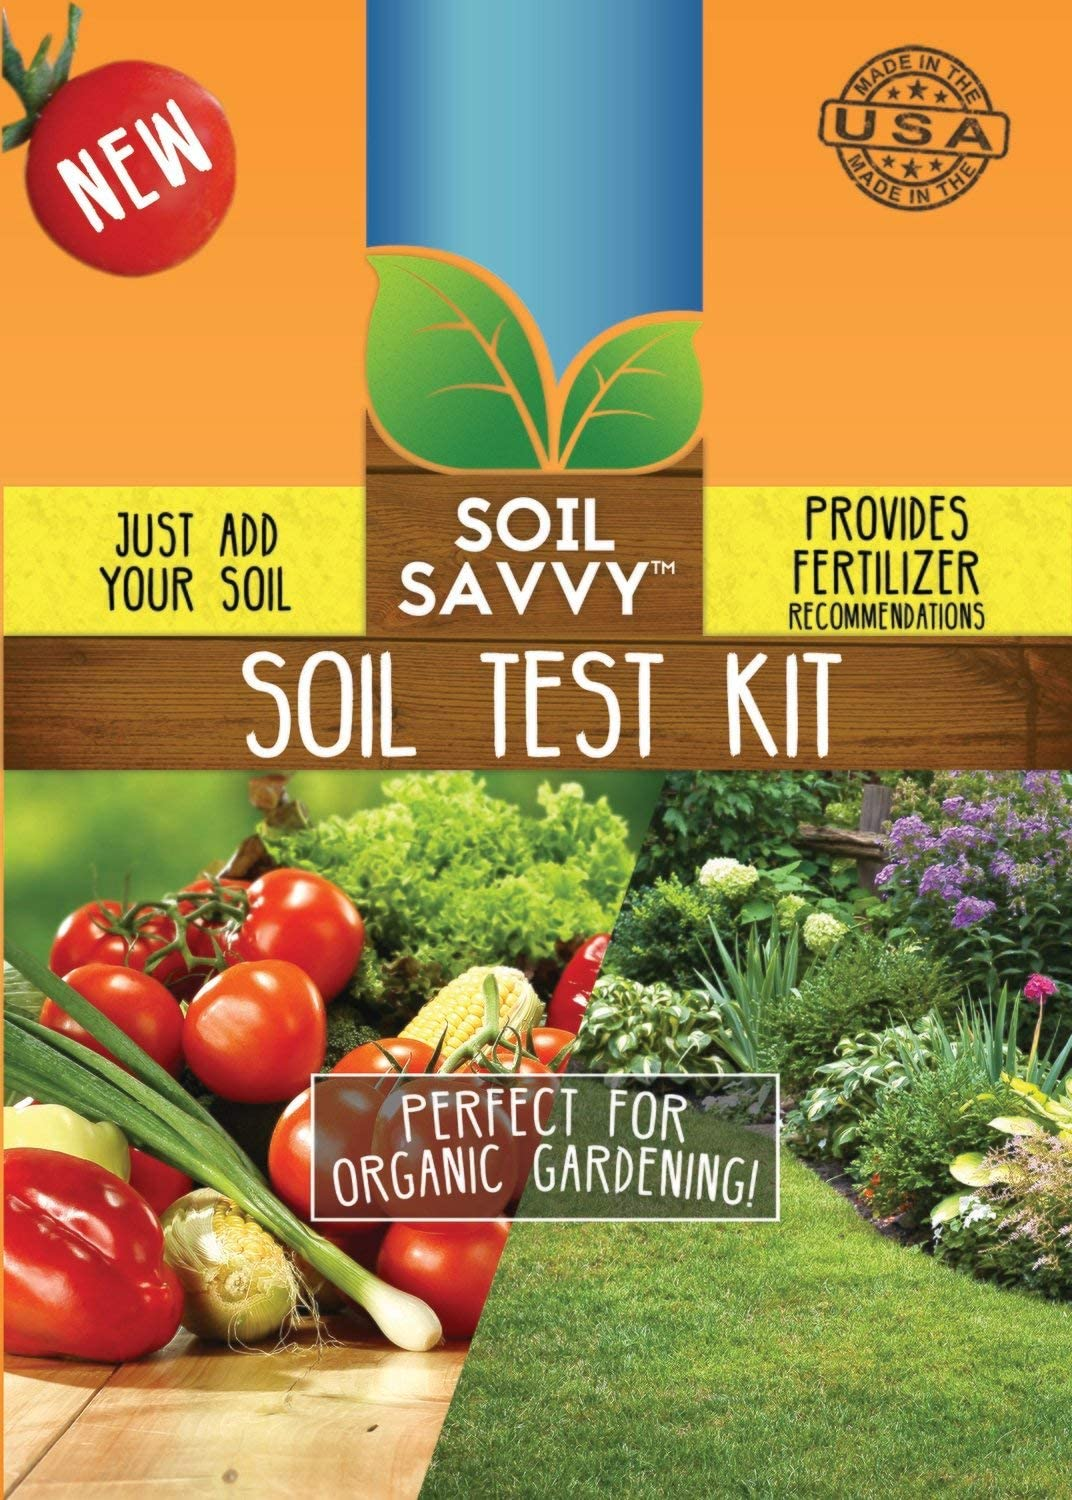 soil test kit for identifying the type of soil you have and how to improve it